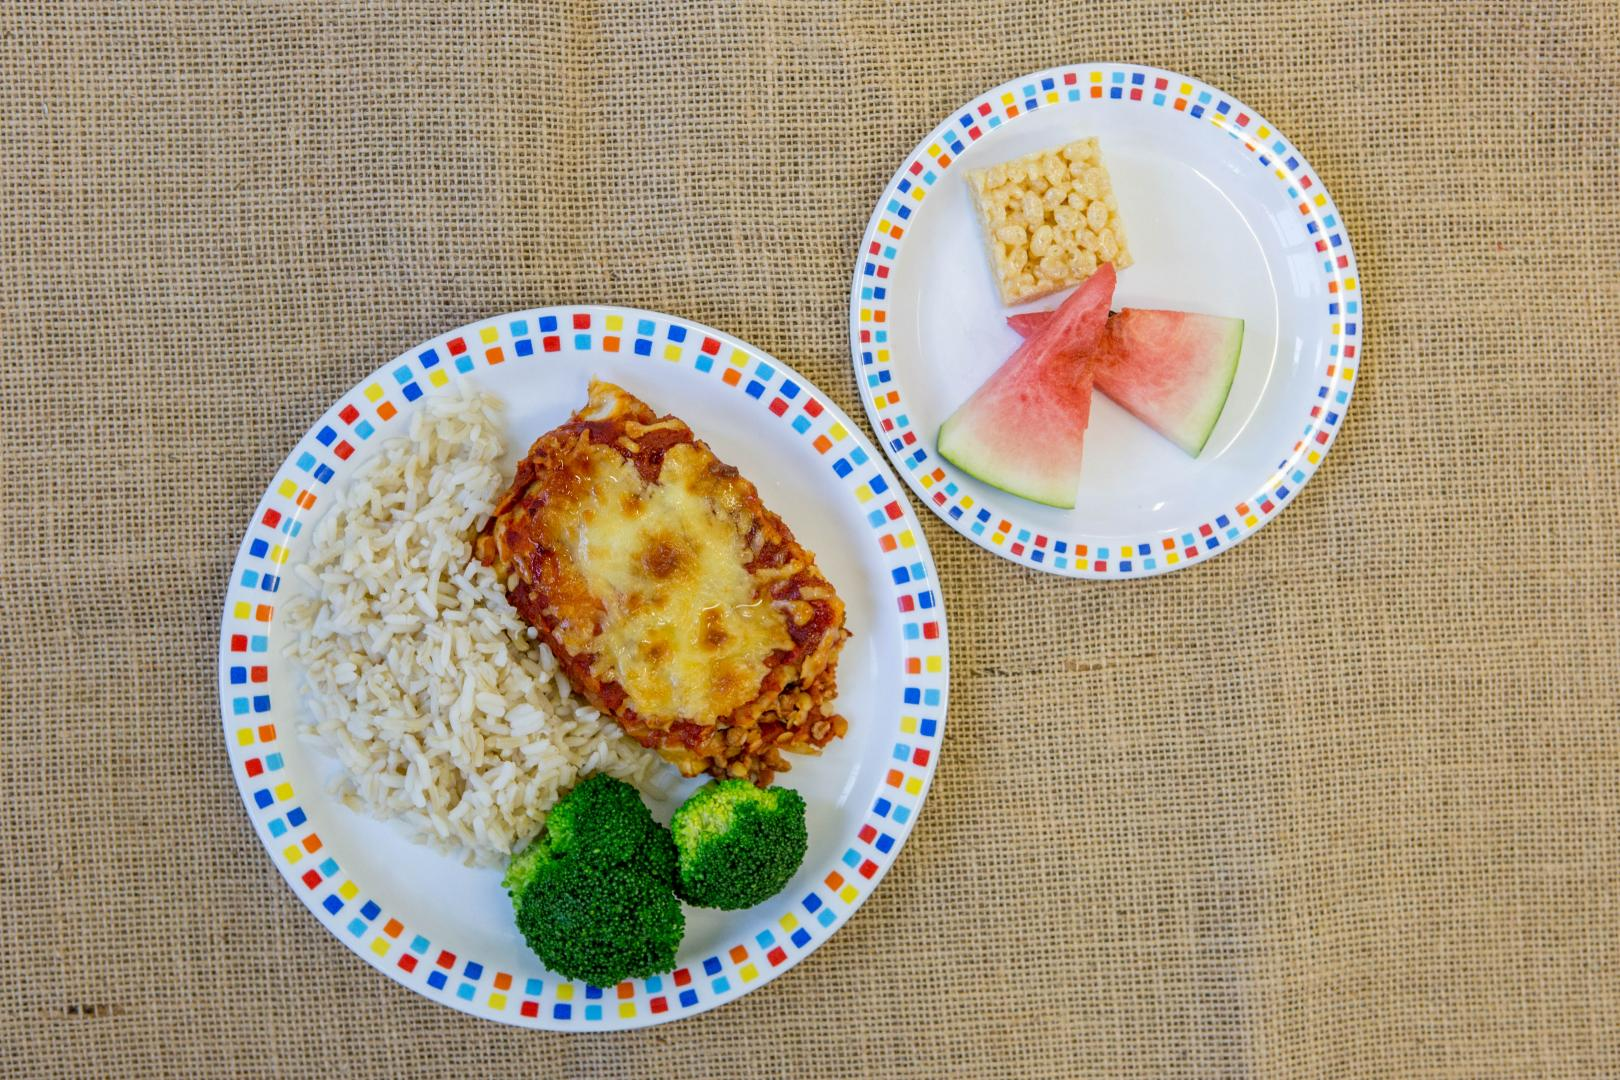 School Dinner Food Photography